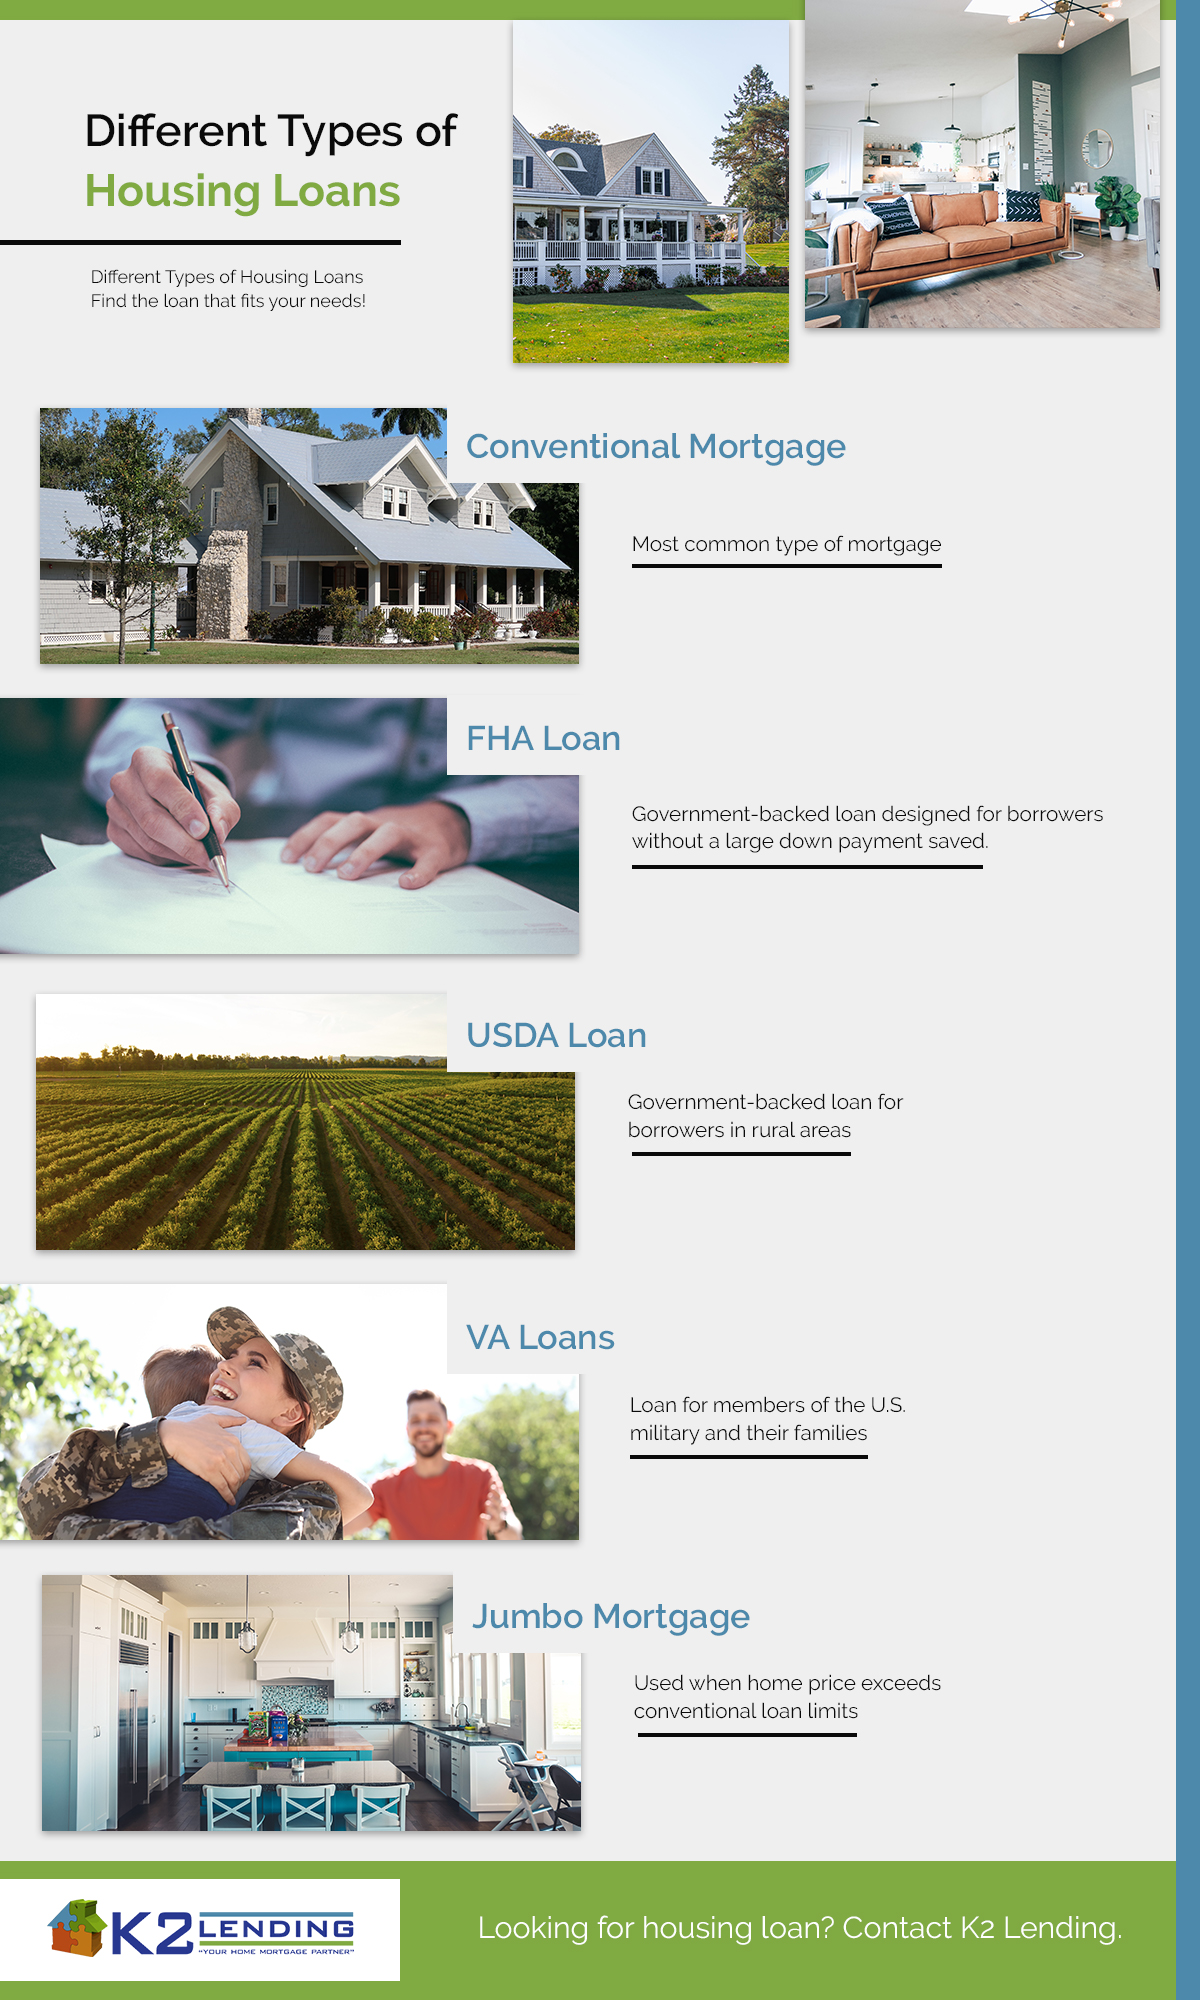 Different Types of Housing Loans